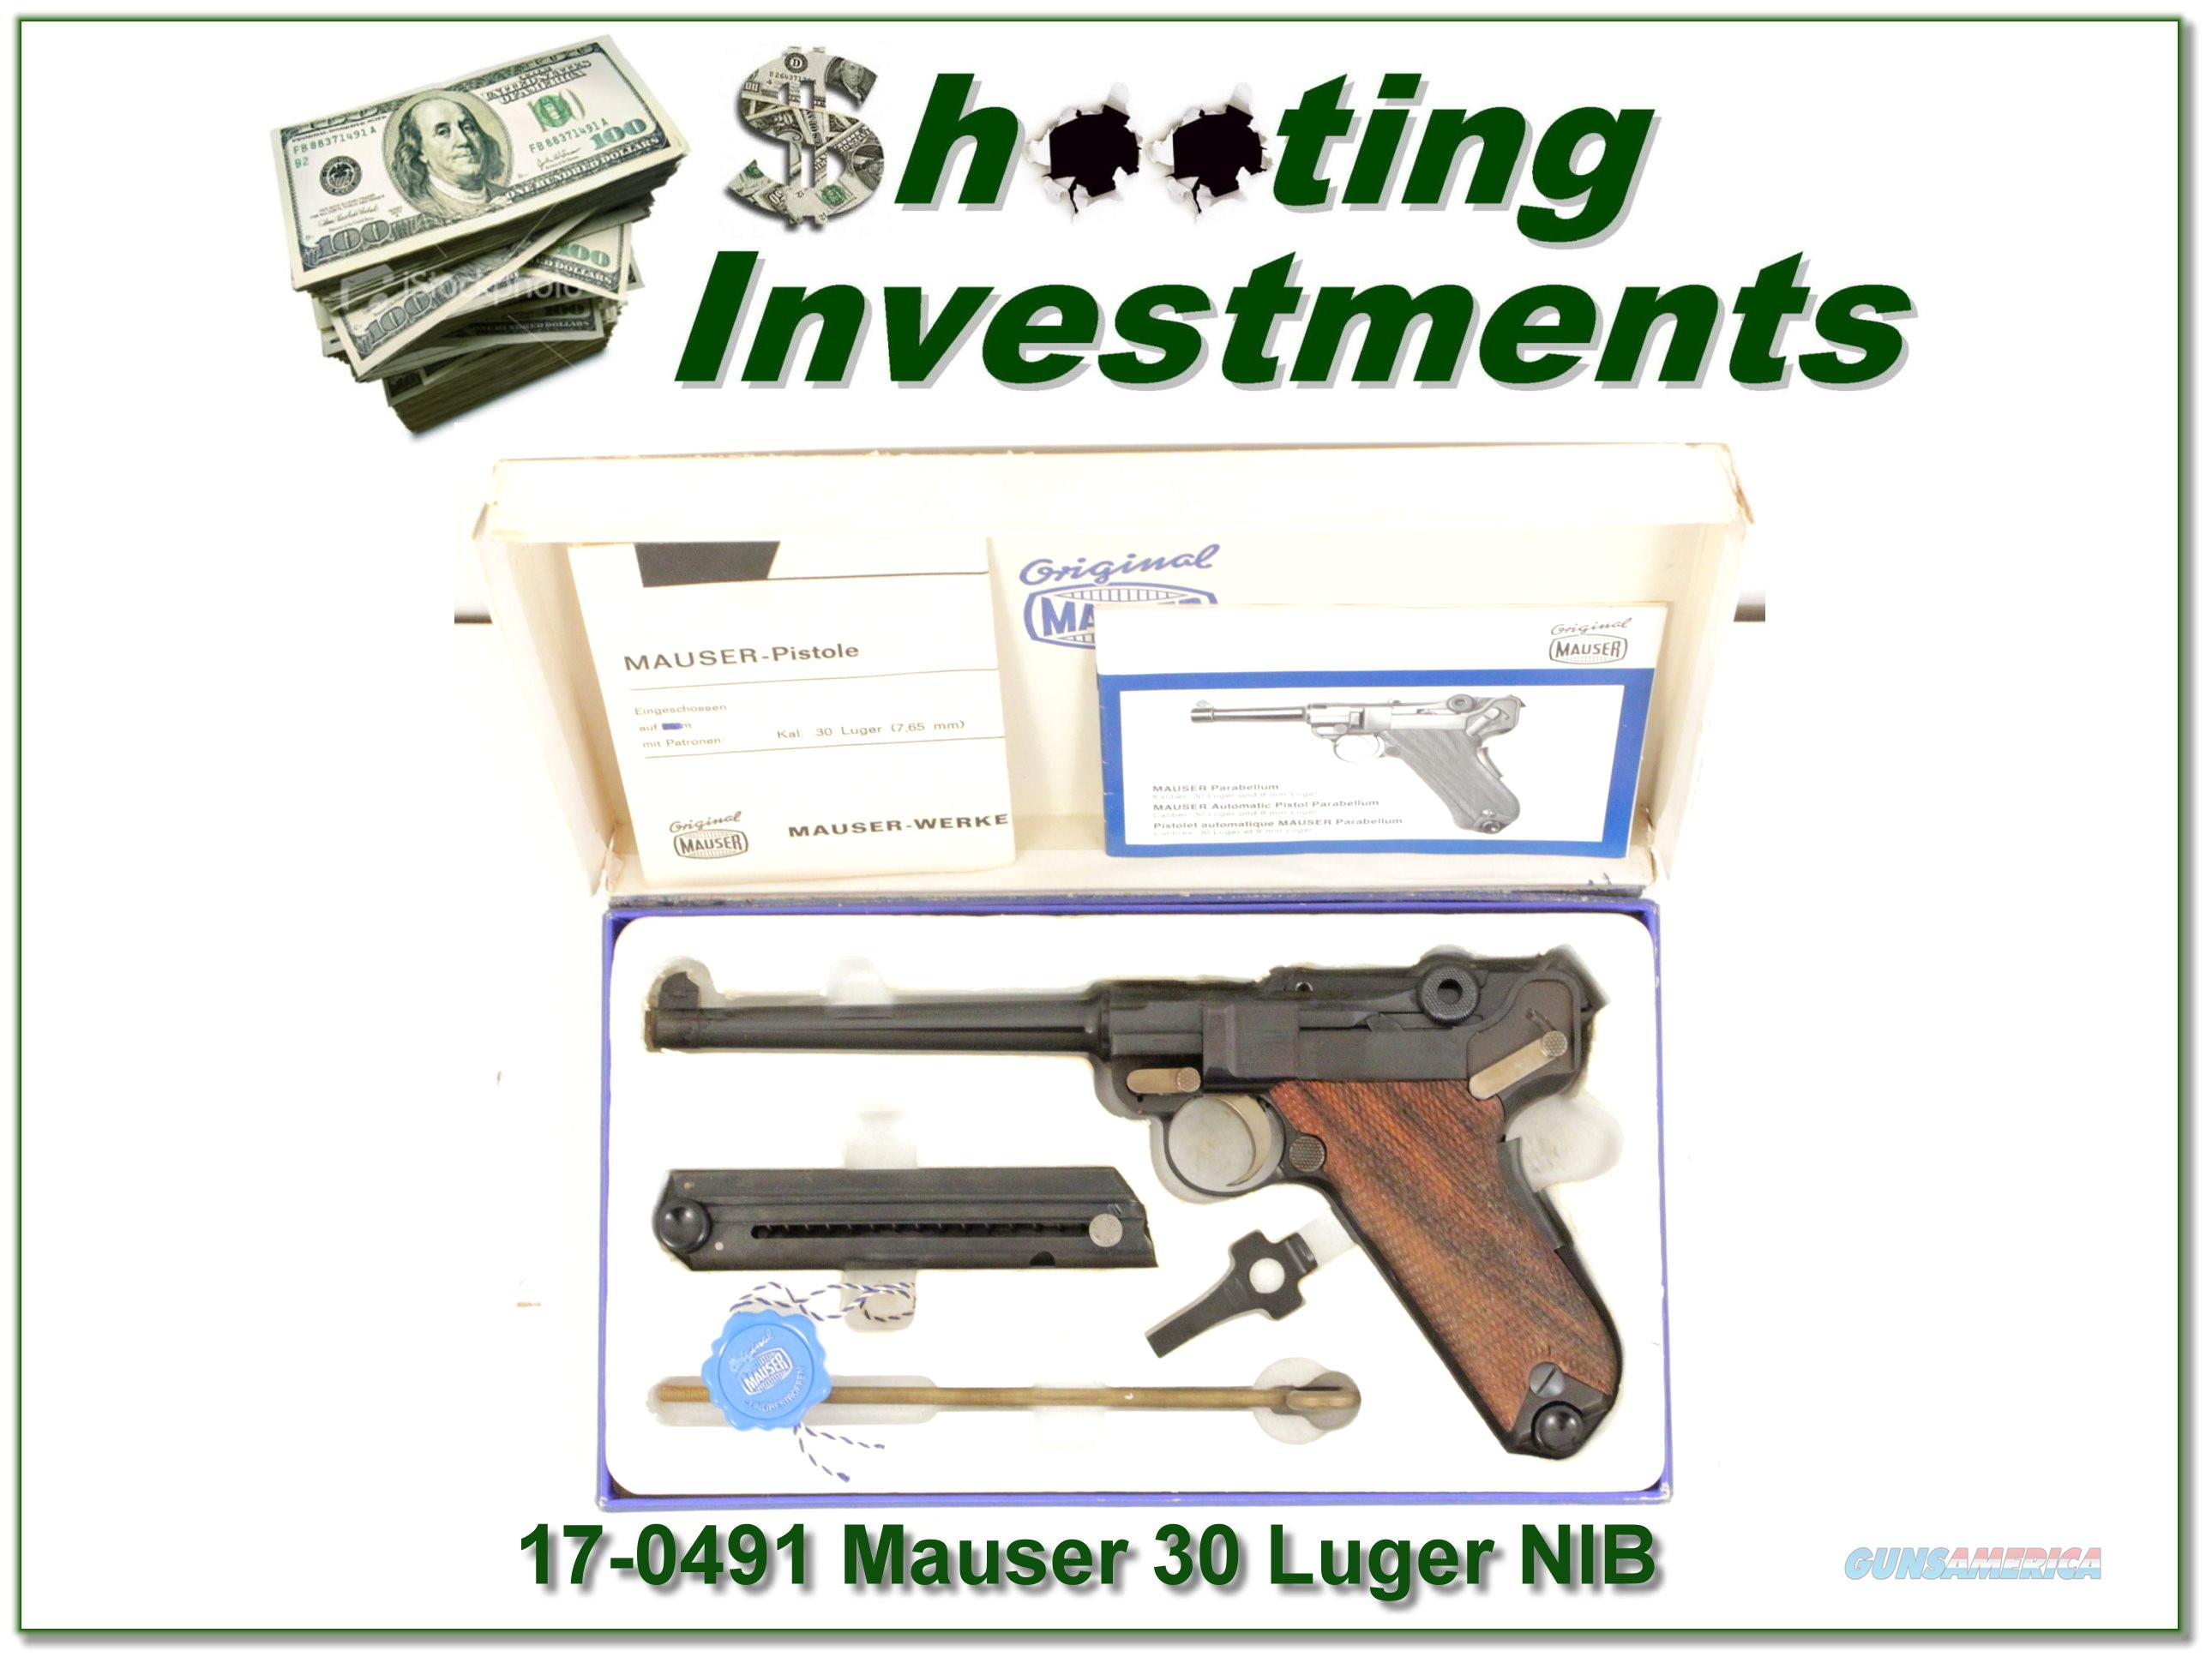 Mauser Luger Interarms 30 caliber 6in NIB!  Guns > Pistols > Mauser Pistols